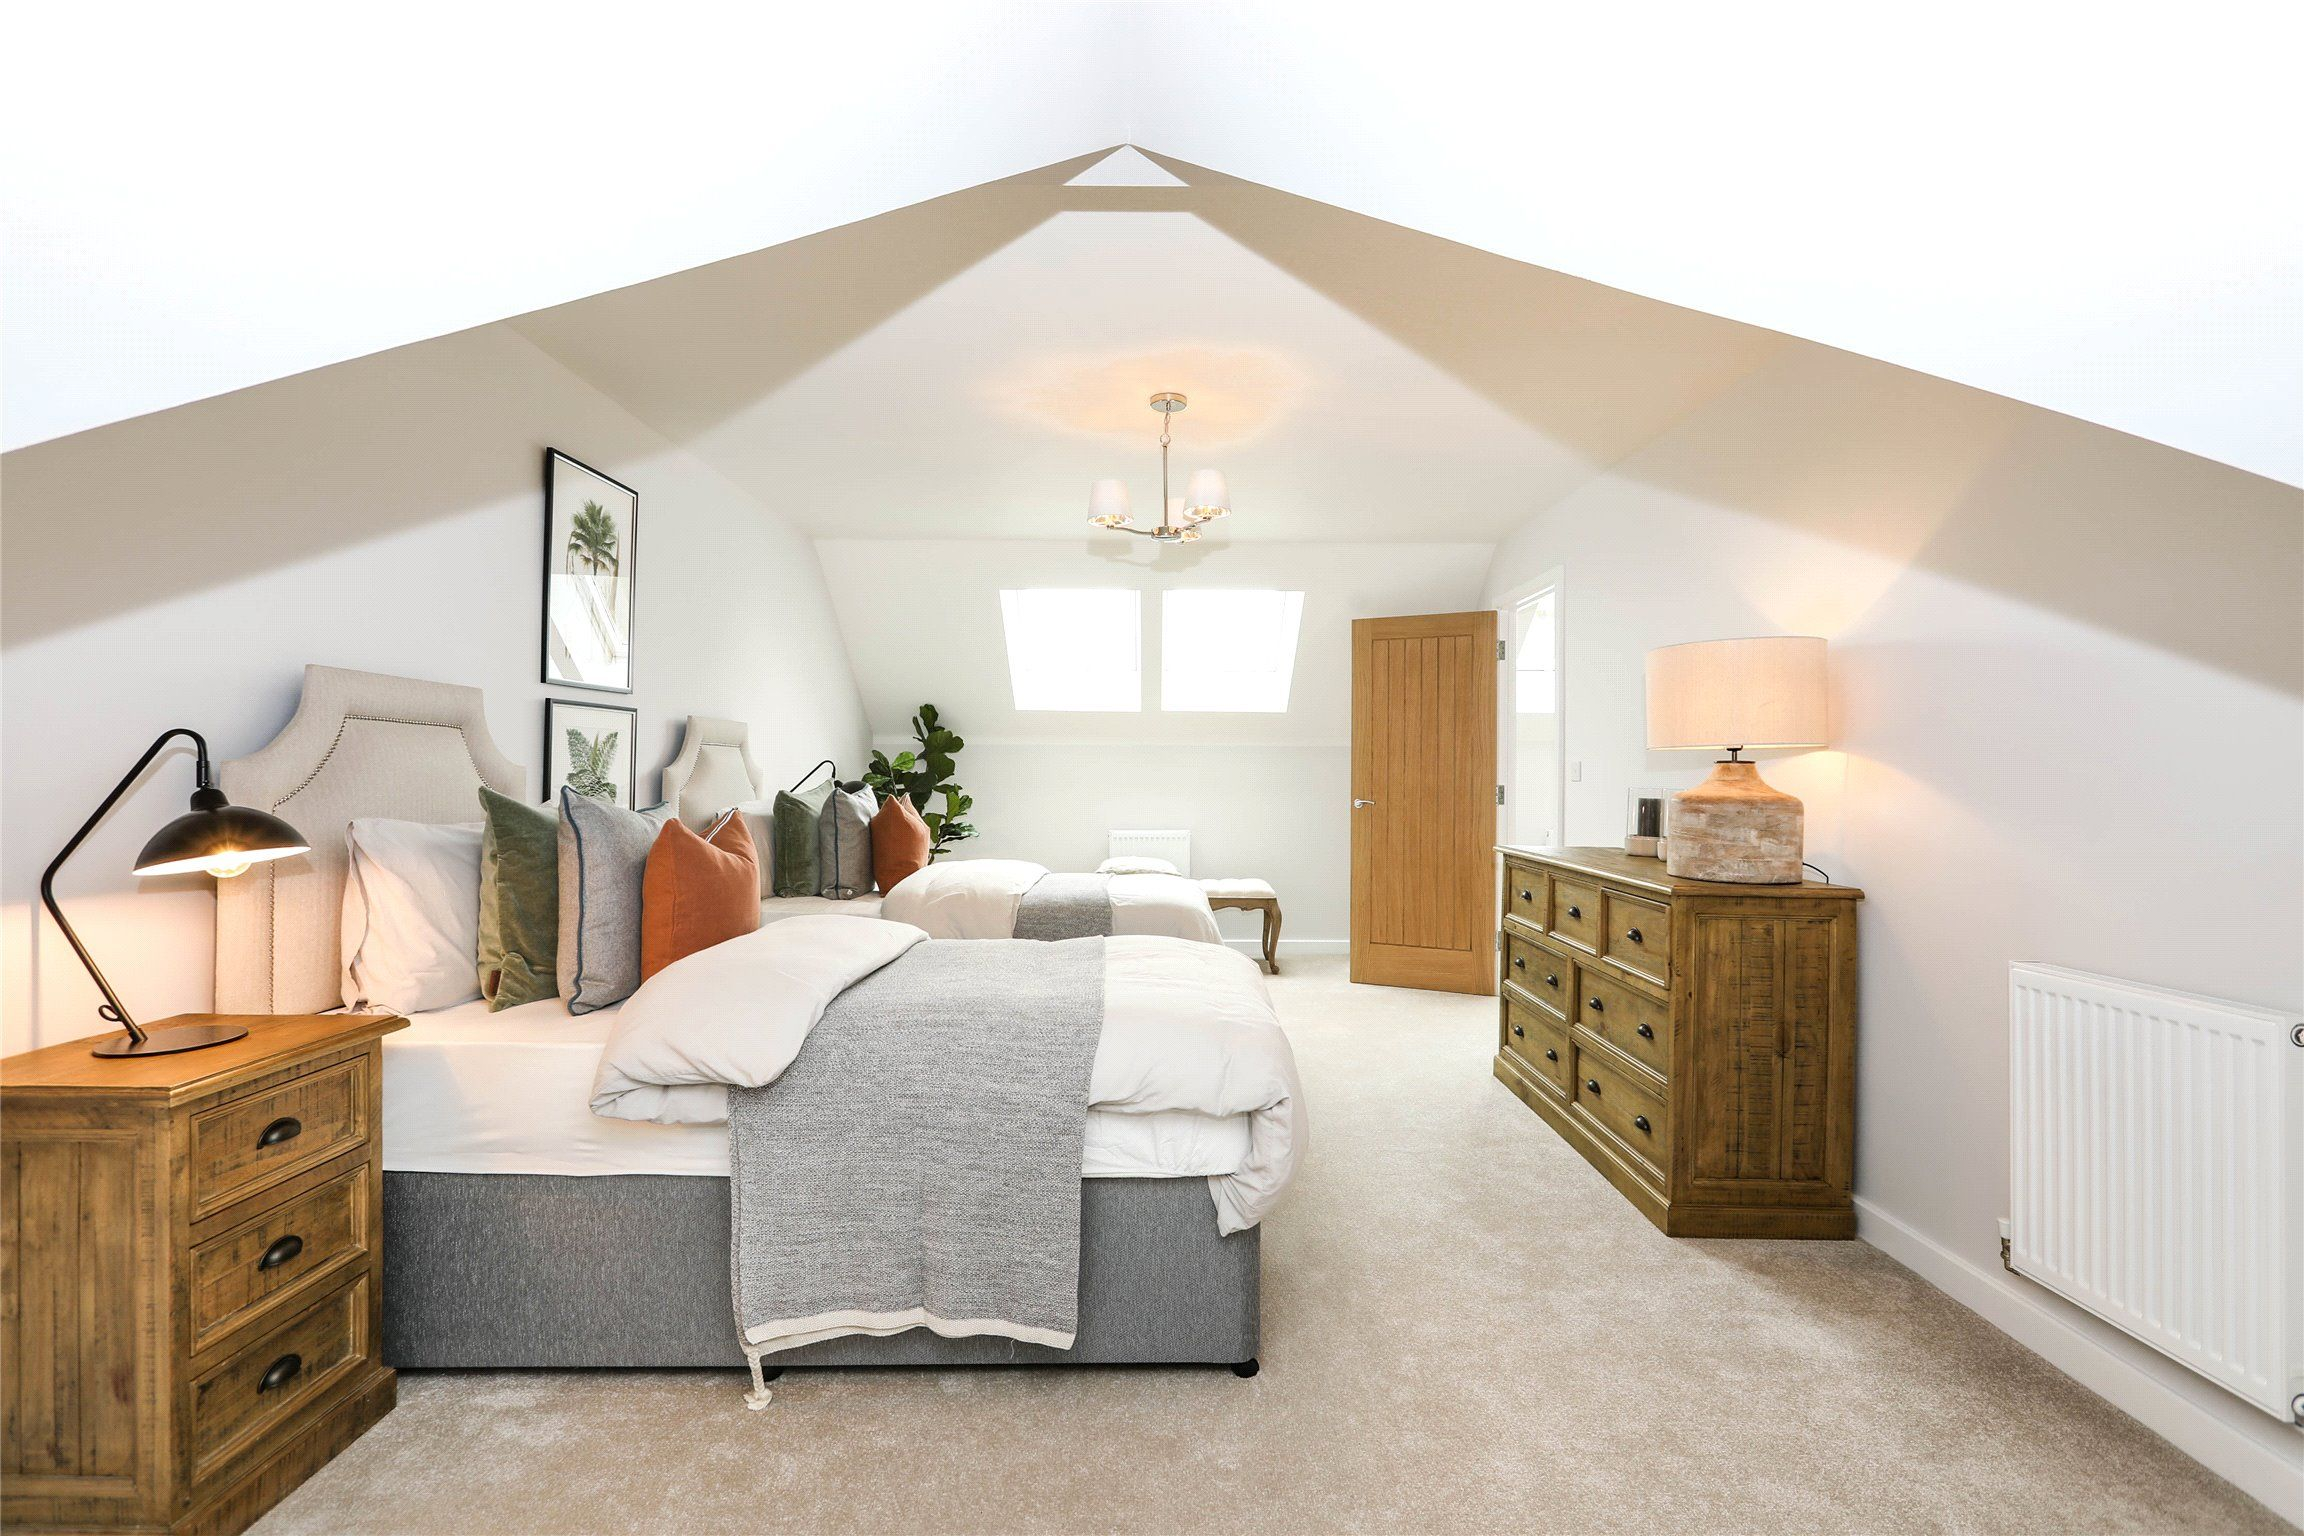 Property photo 1 of 17. Showhome Image